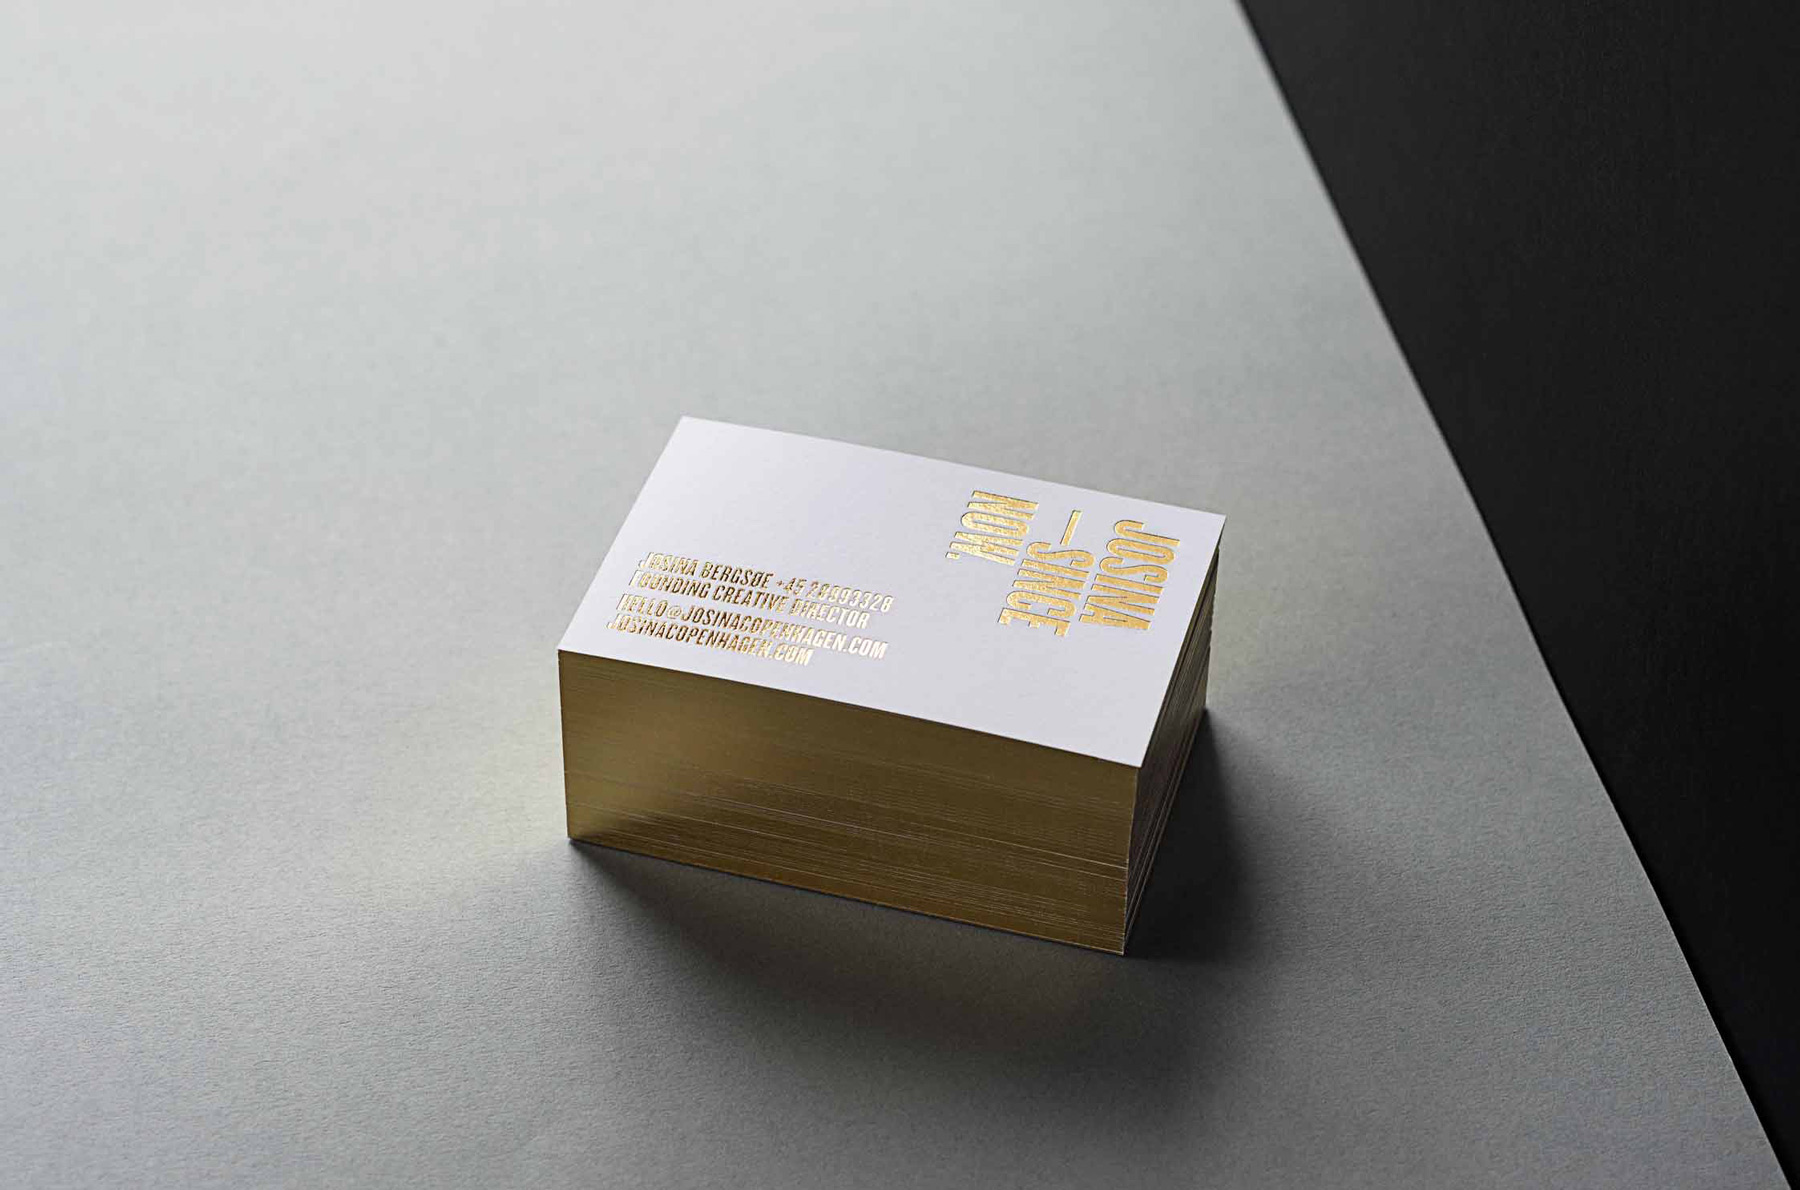 Mads_jakob_Poulsen_projects-Josina_jewelry-businesscards